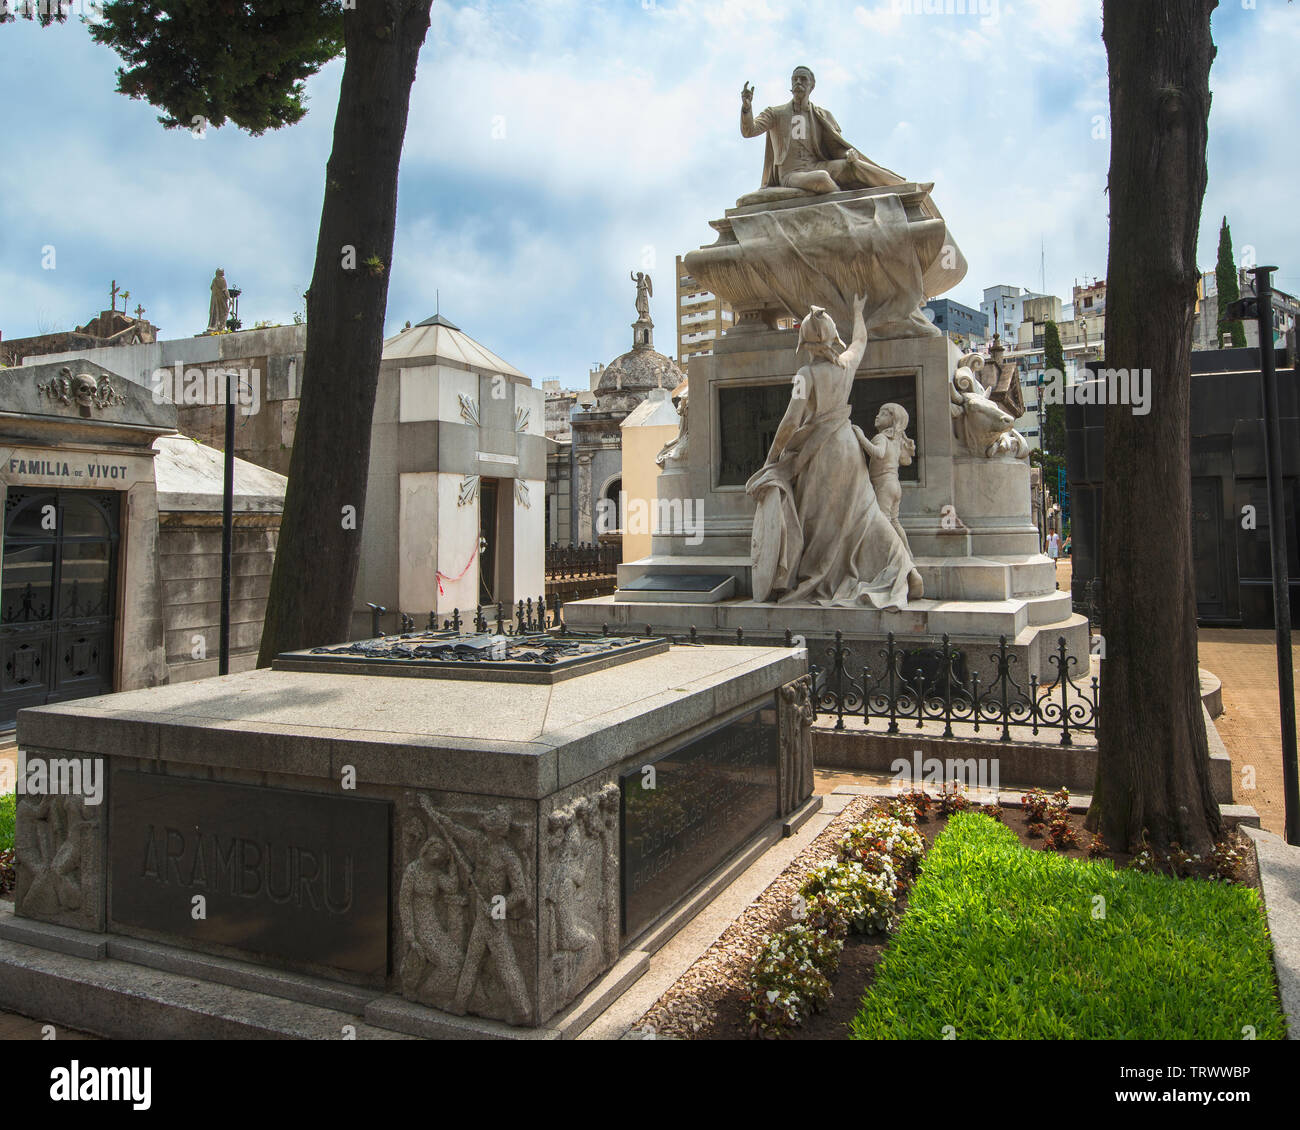 La Recoleta Cemetery of Buenos Aires, Argentina. It contains the graves of notable people, including Eva Peron, Argentinian presidents... Stock Photo